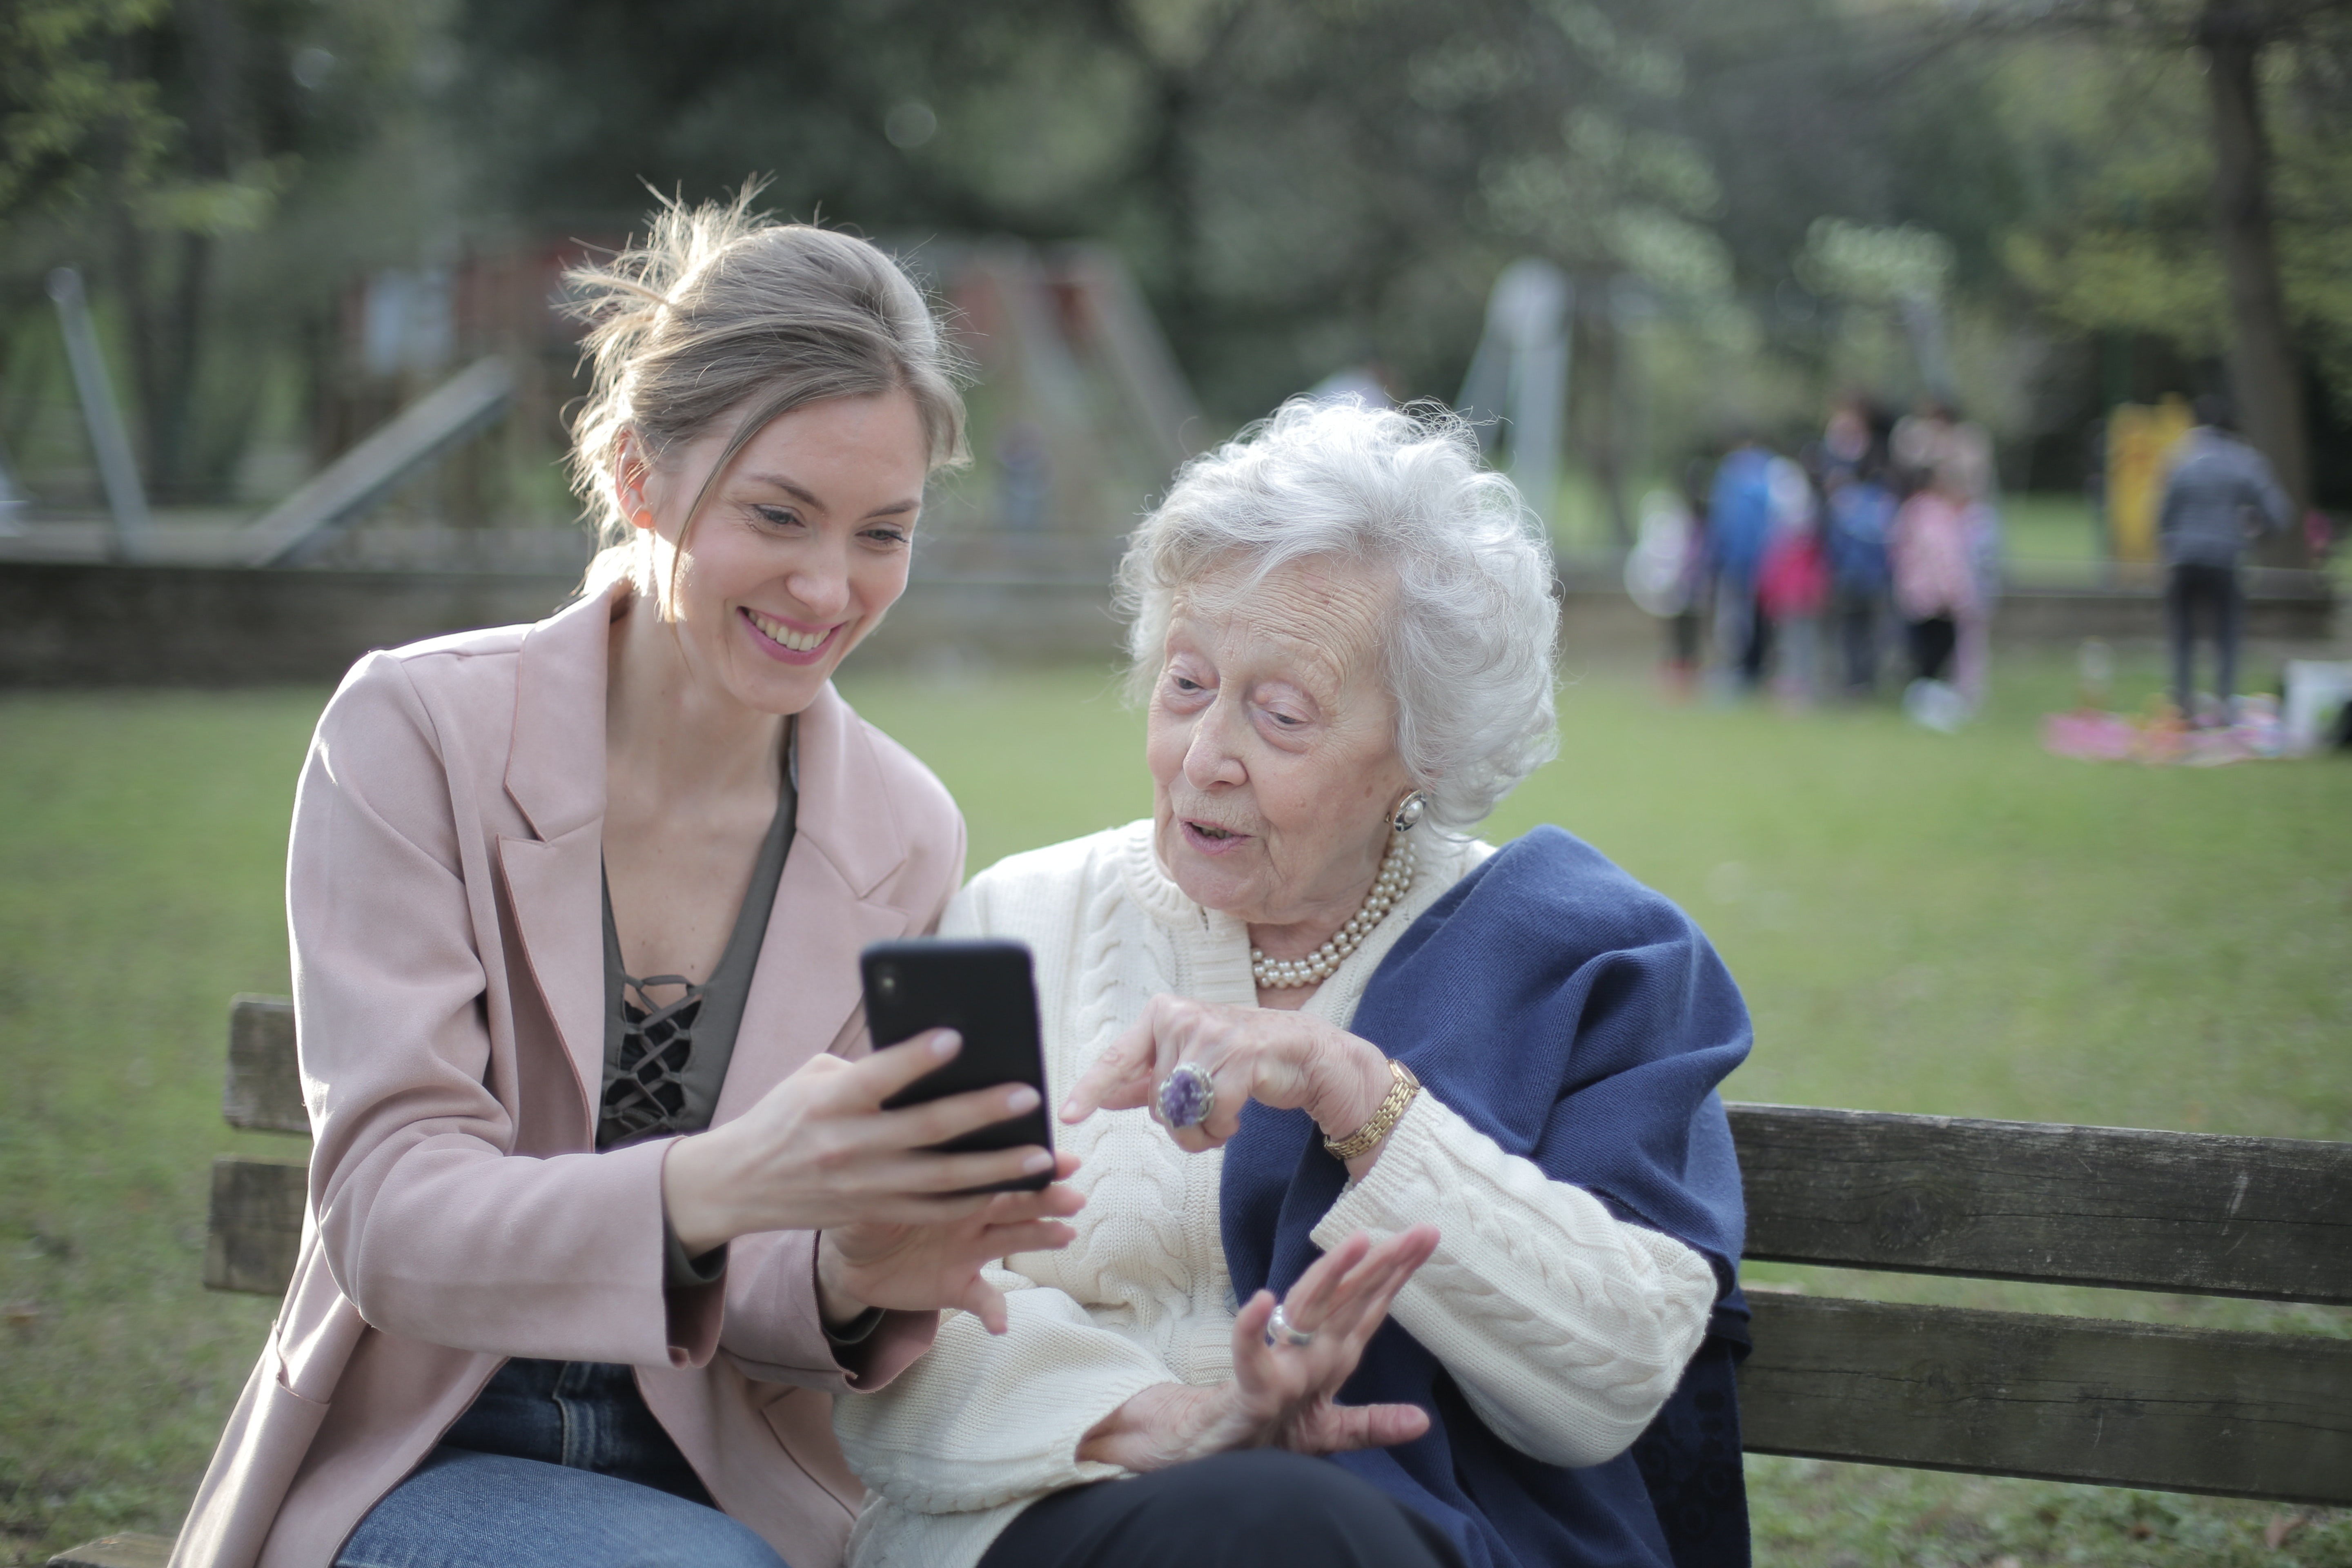 A younger woman showing an older woman something on a phone